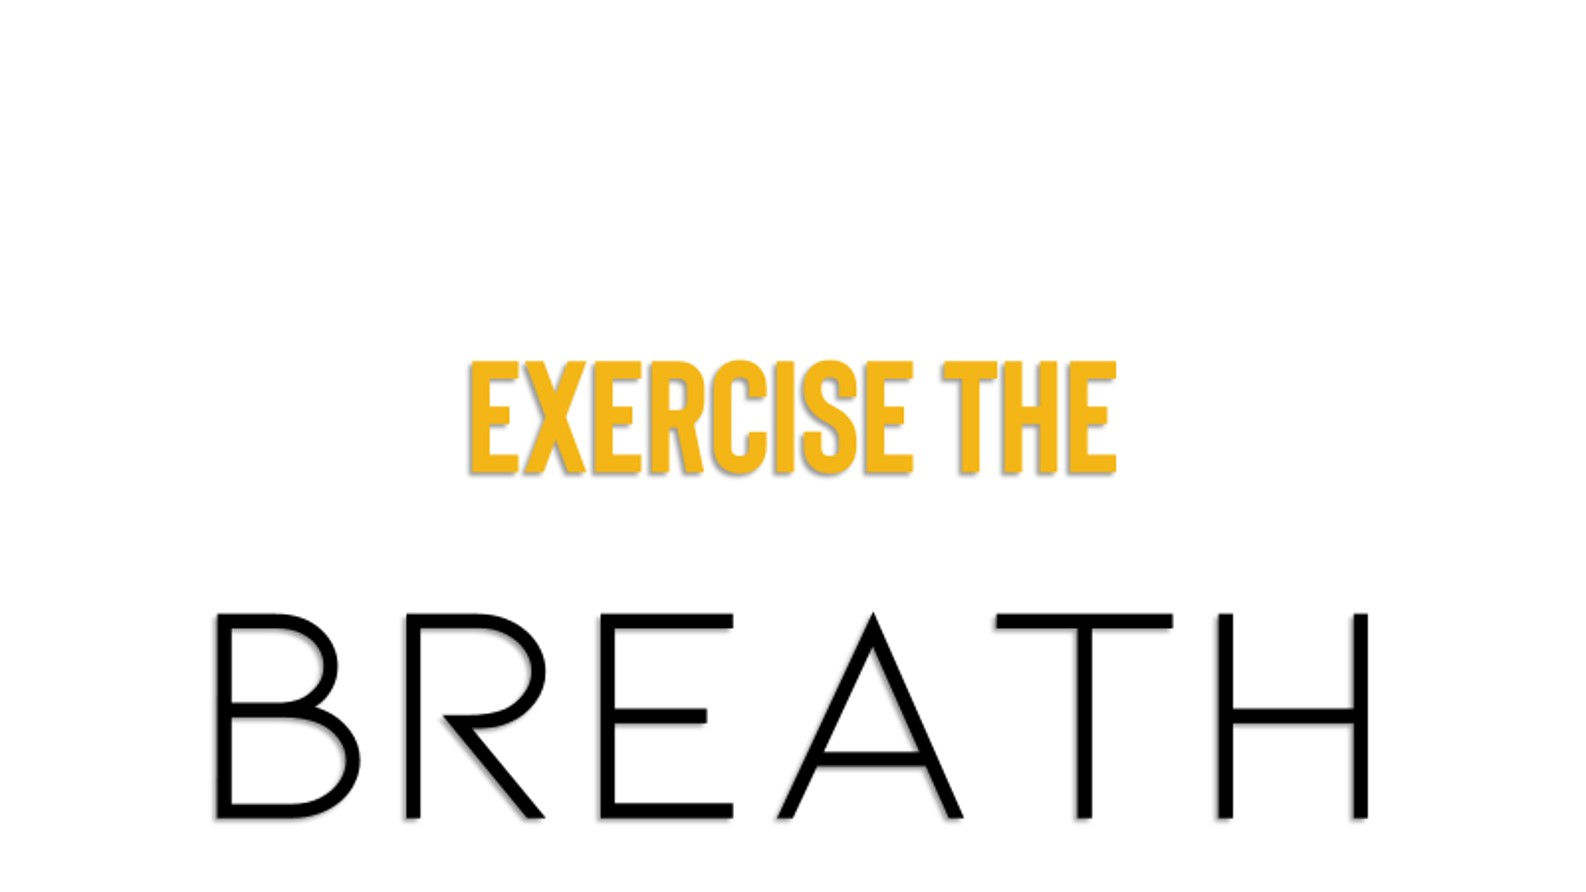 Exercise the breath